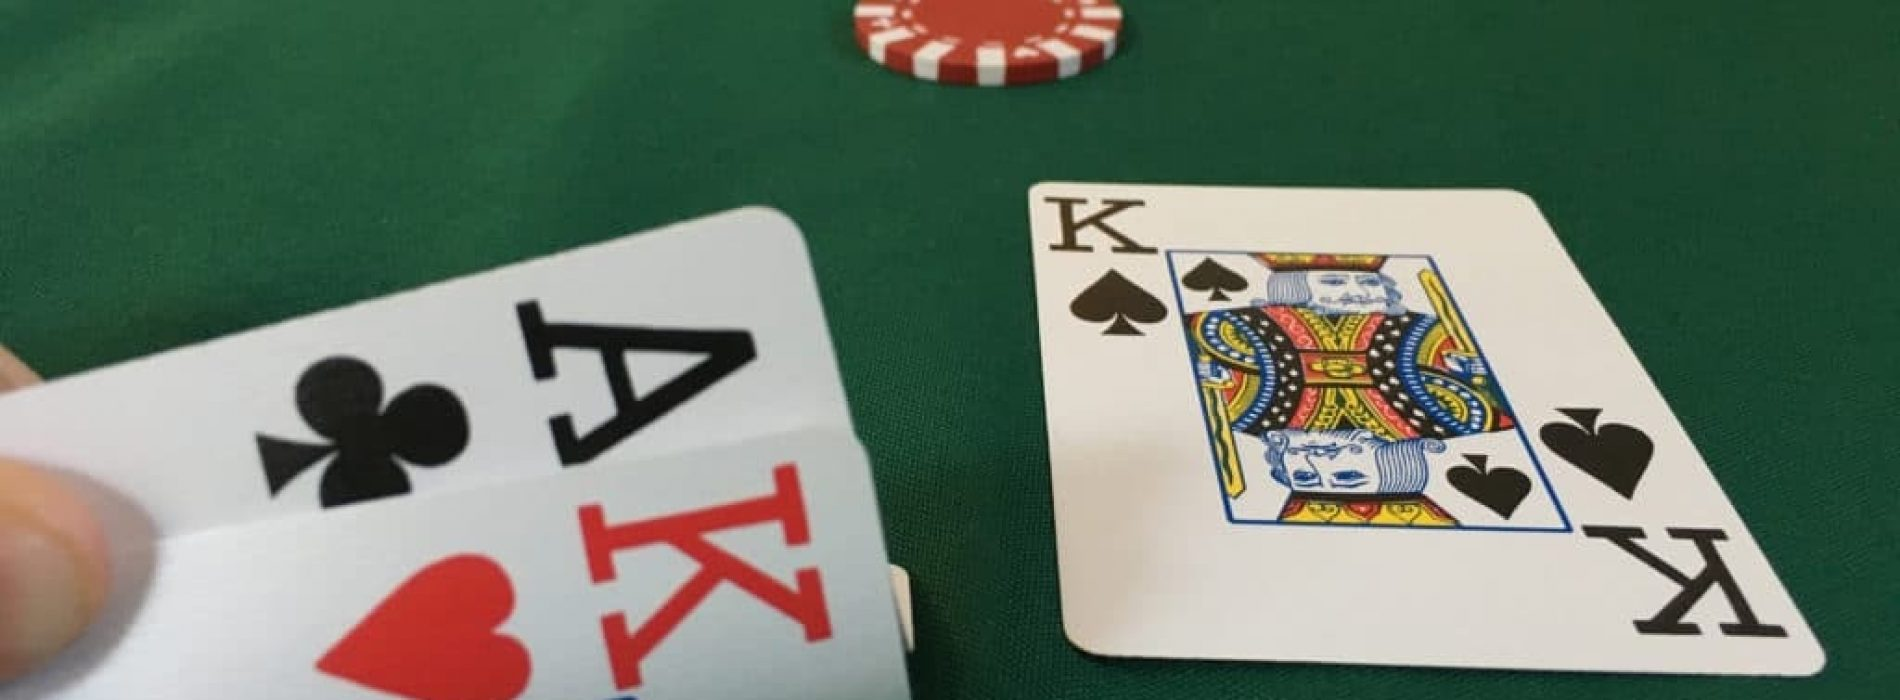 Effective guide to beginners on how to play poker games